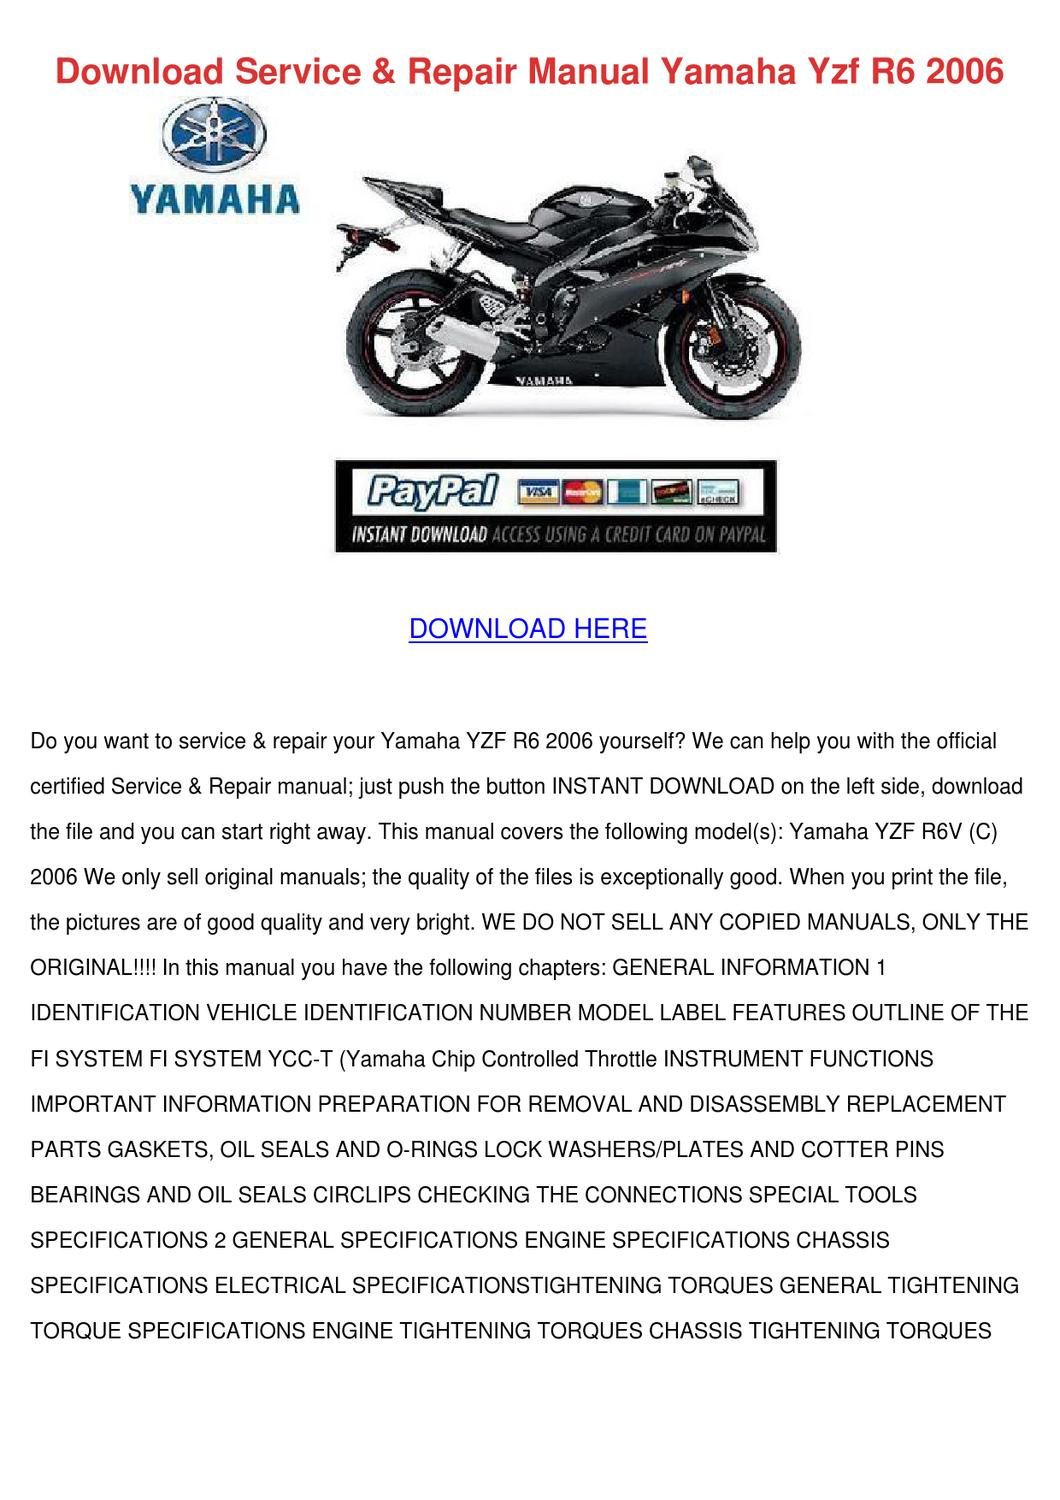 hight resolution of download service repair manual yamaha yzf r6